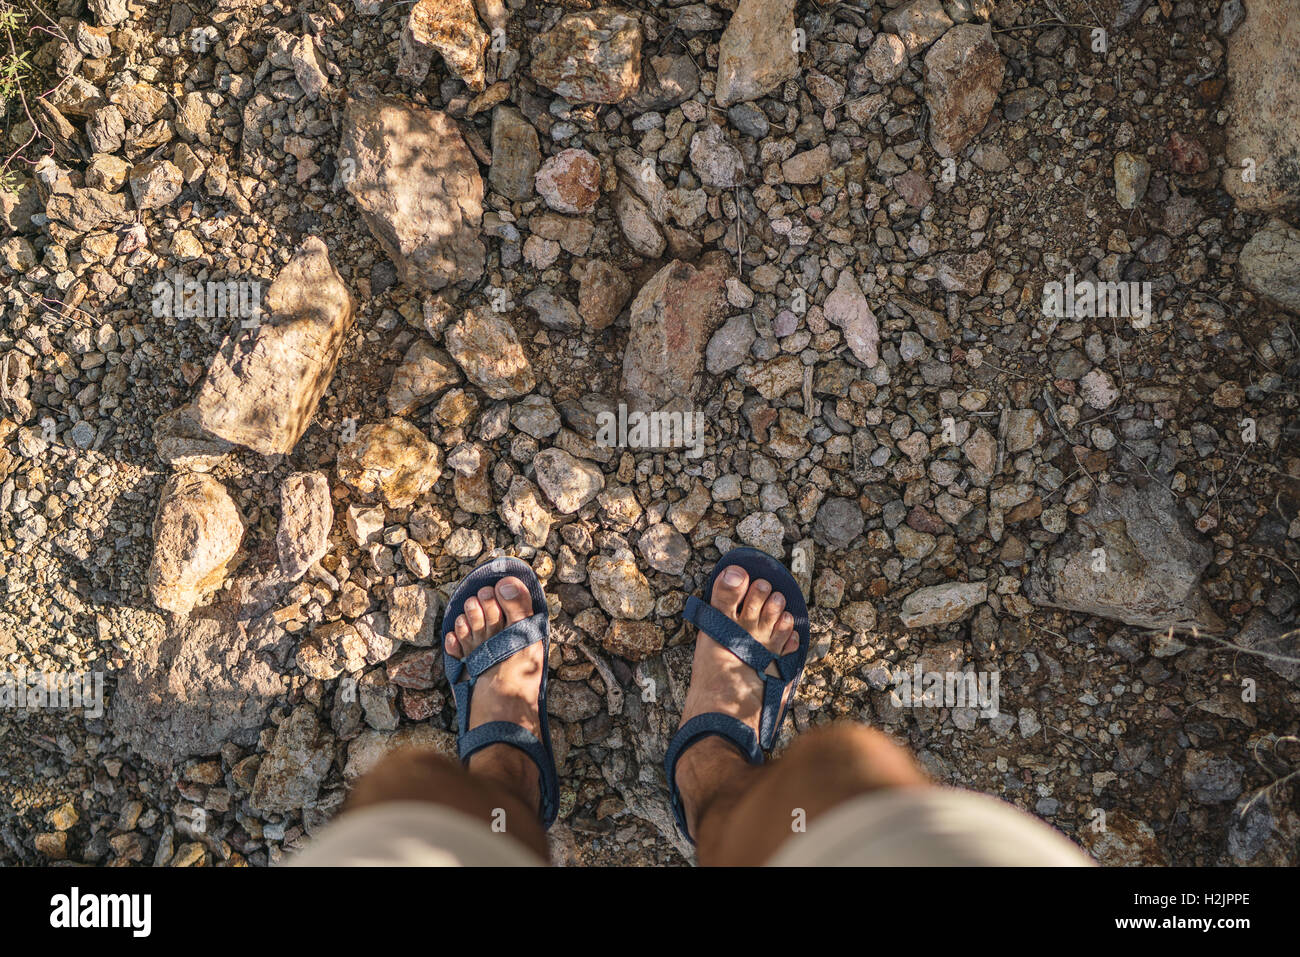 Sandals in the rocky desert of Saguaro National Park - Stock Image